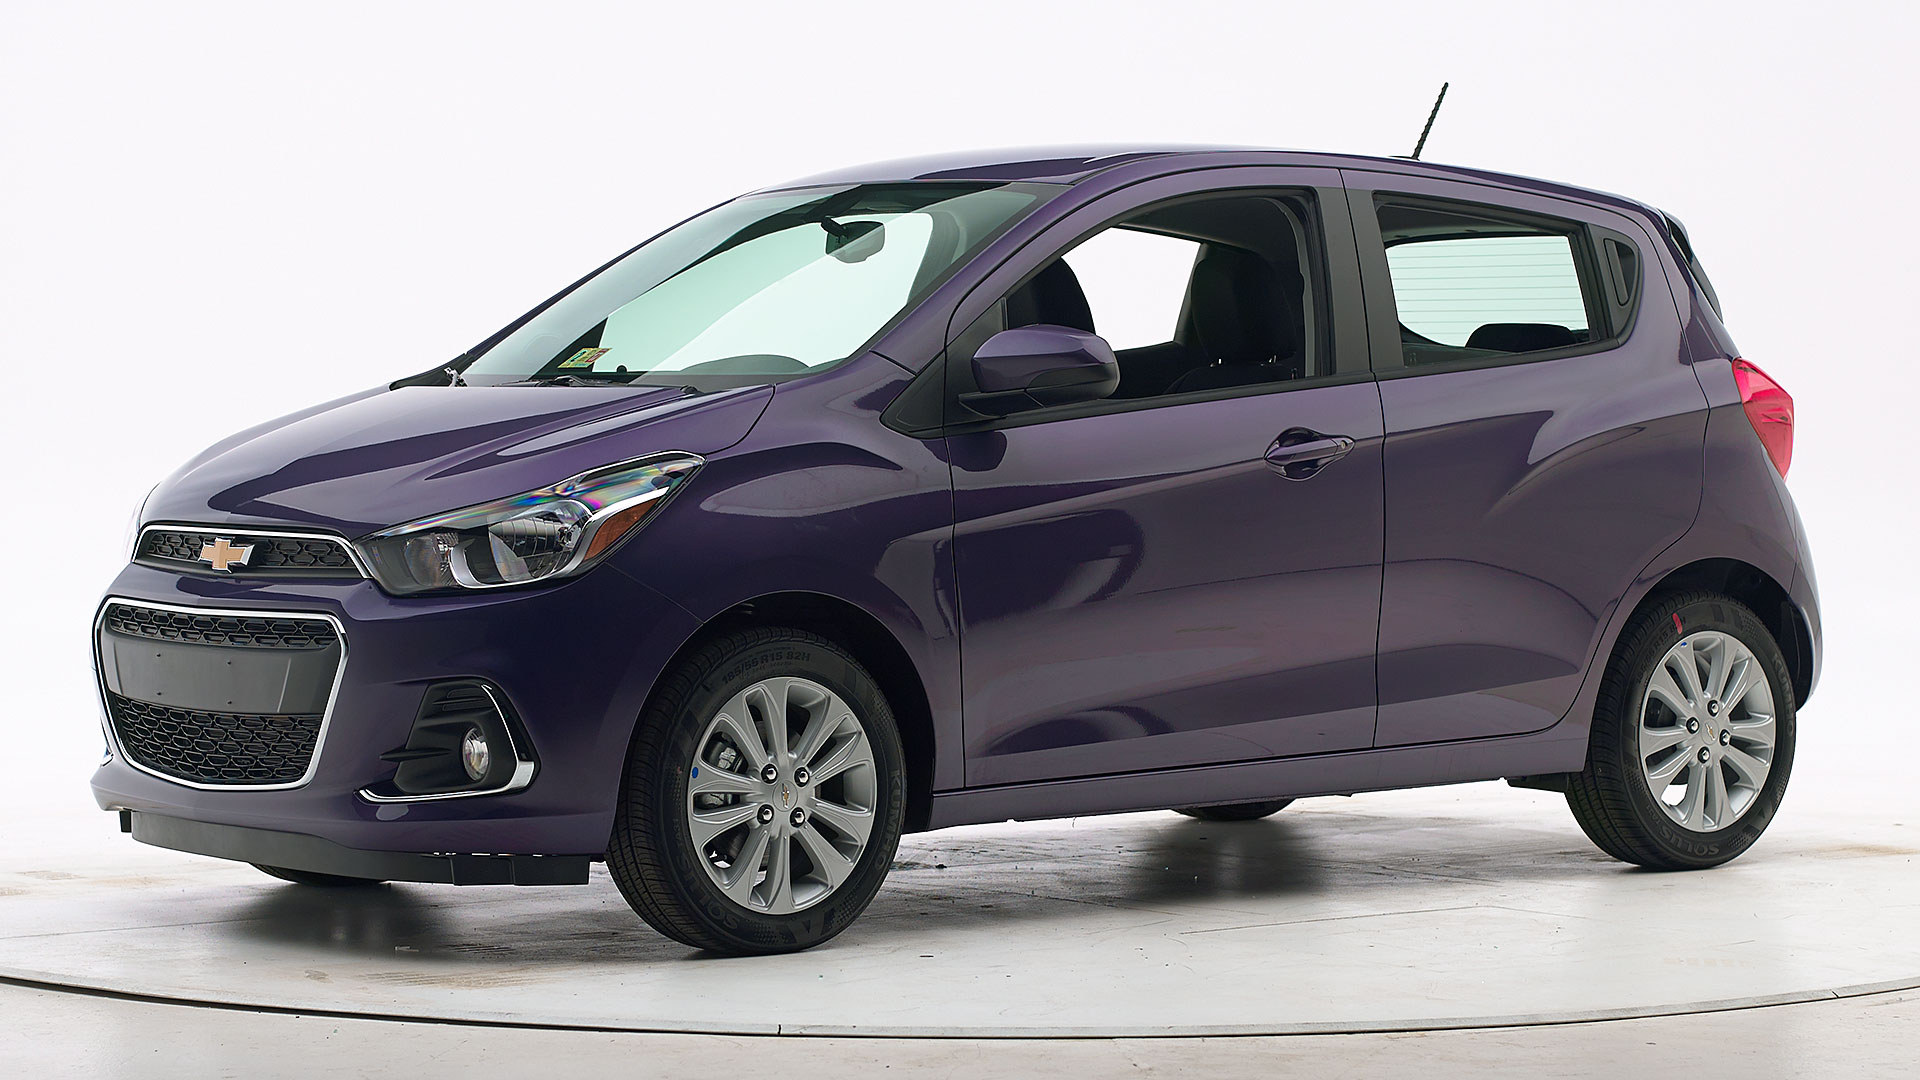 2018 Chevrolet Spark 4-door hatchback